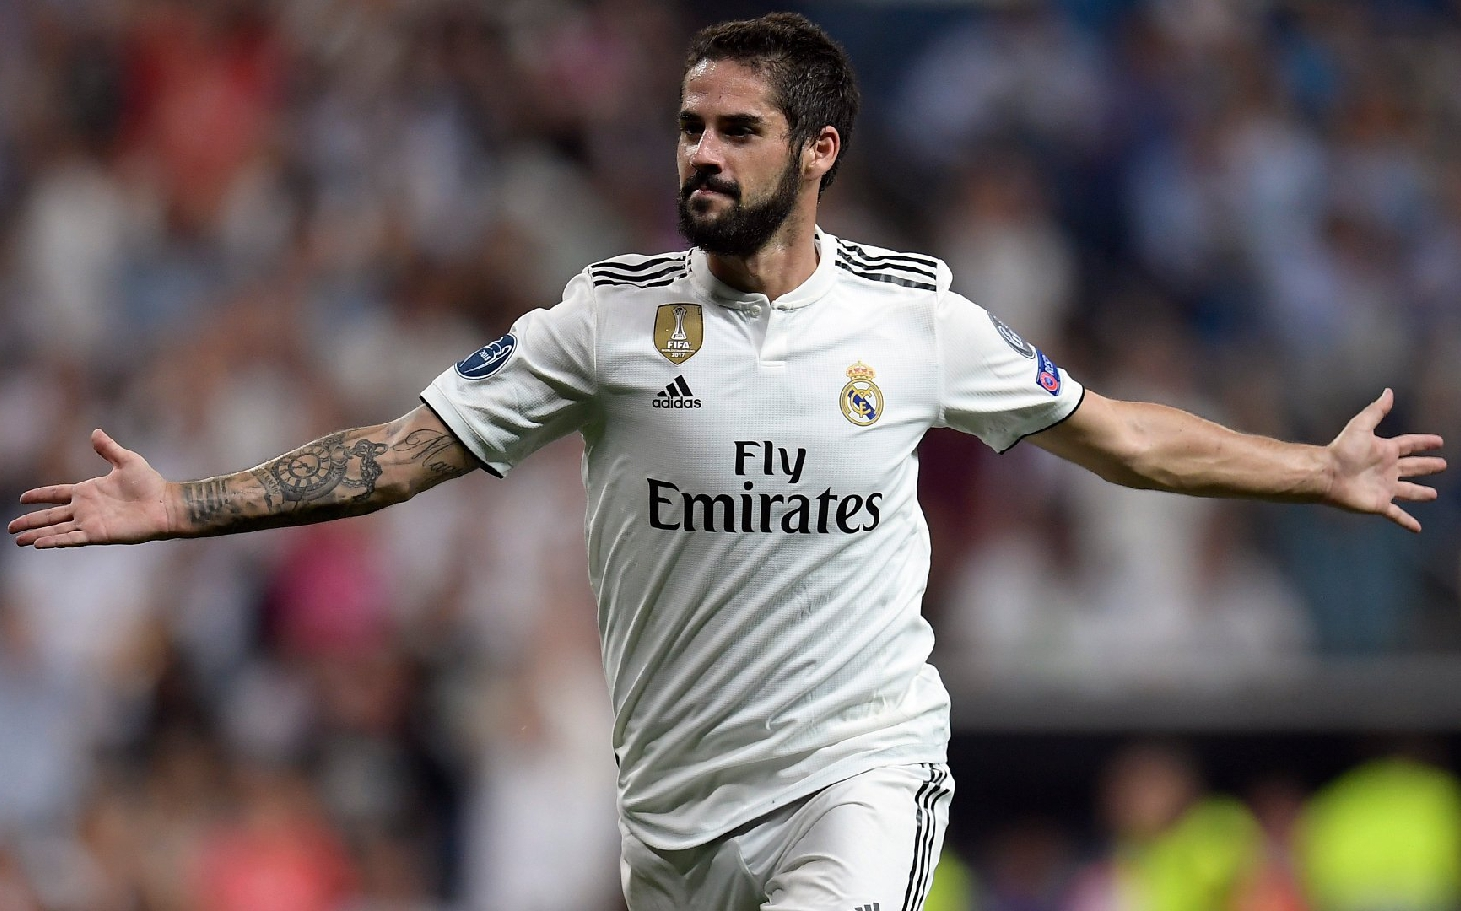 Madrid Coach, Solari: Isco Knows What To Do To Regain Starting Spot